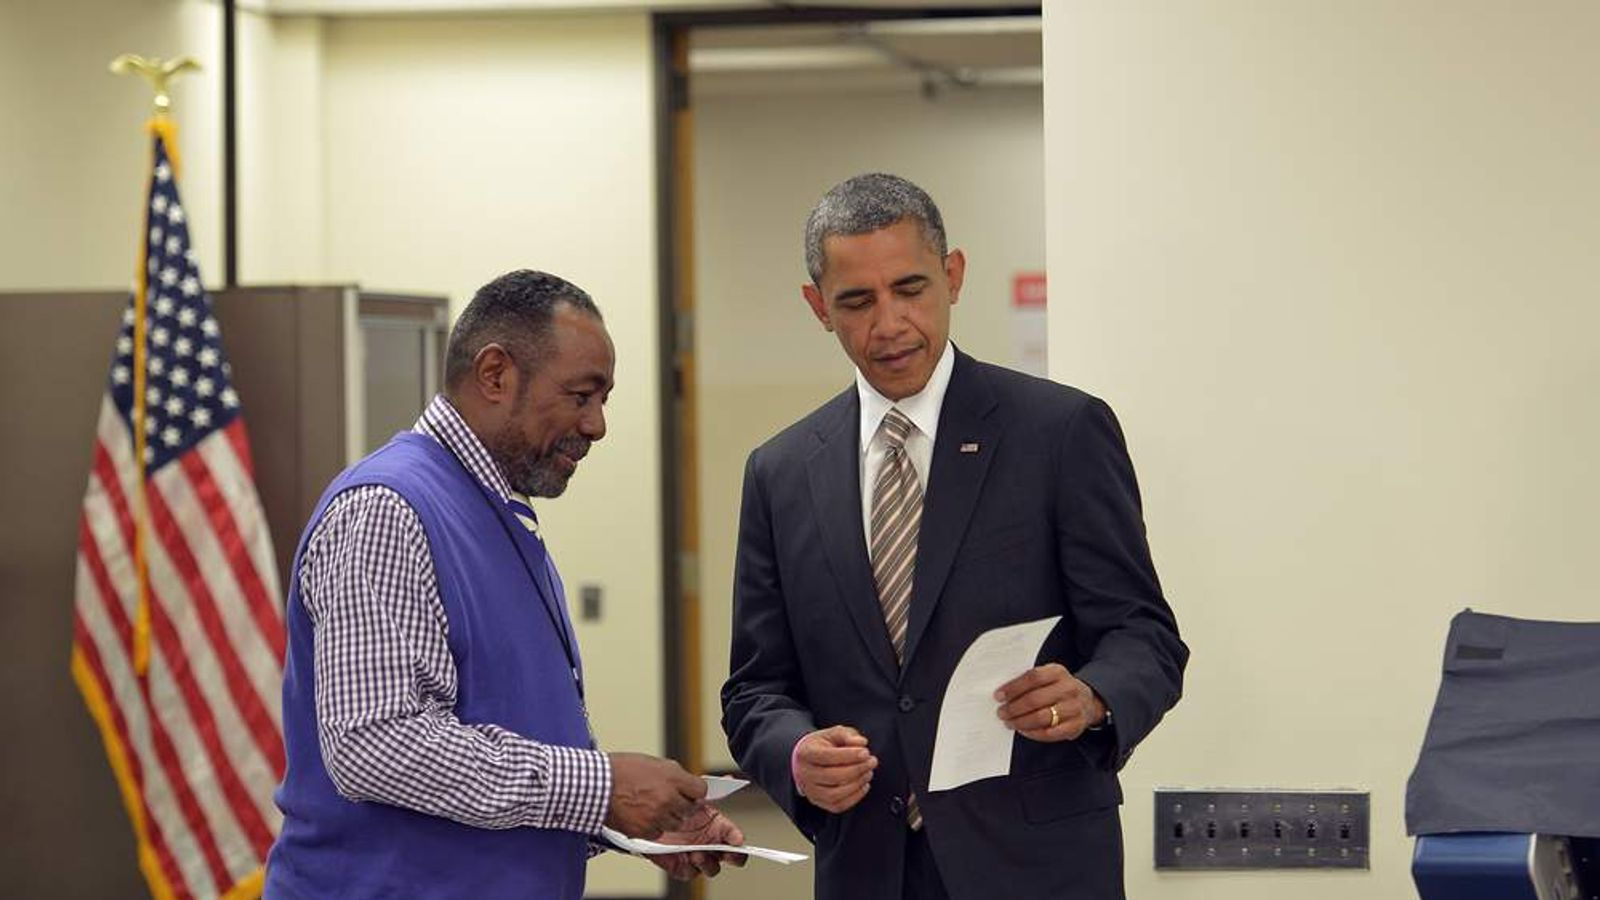 President Barack Obama at a polling station in Chicago